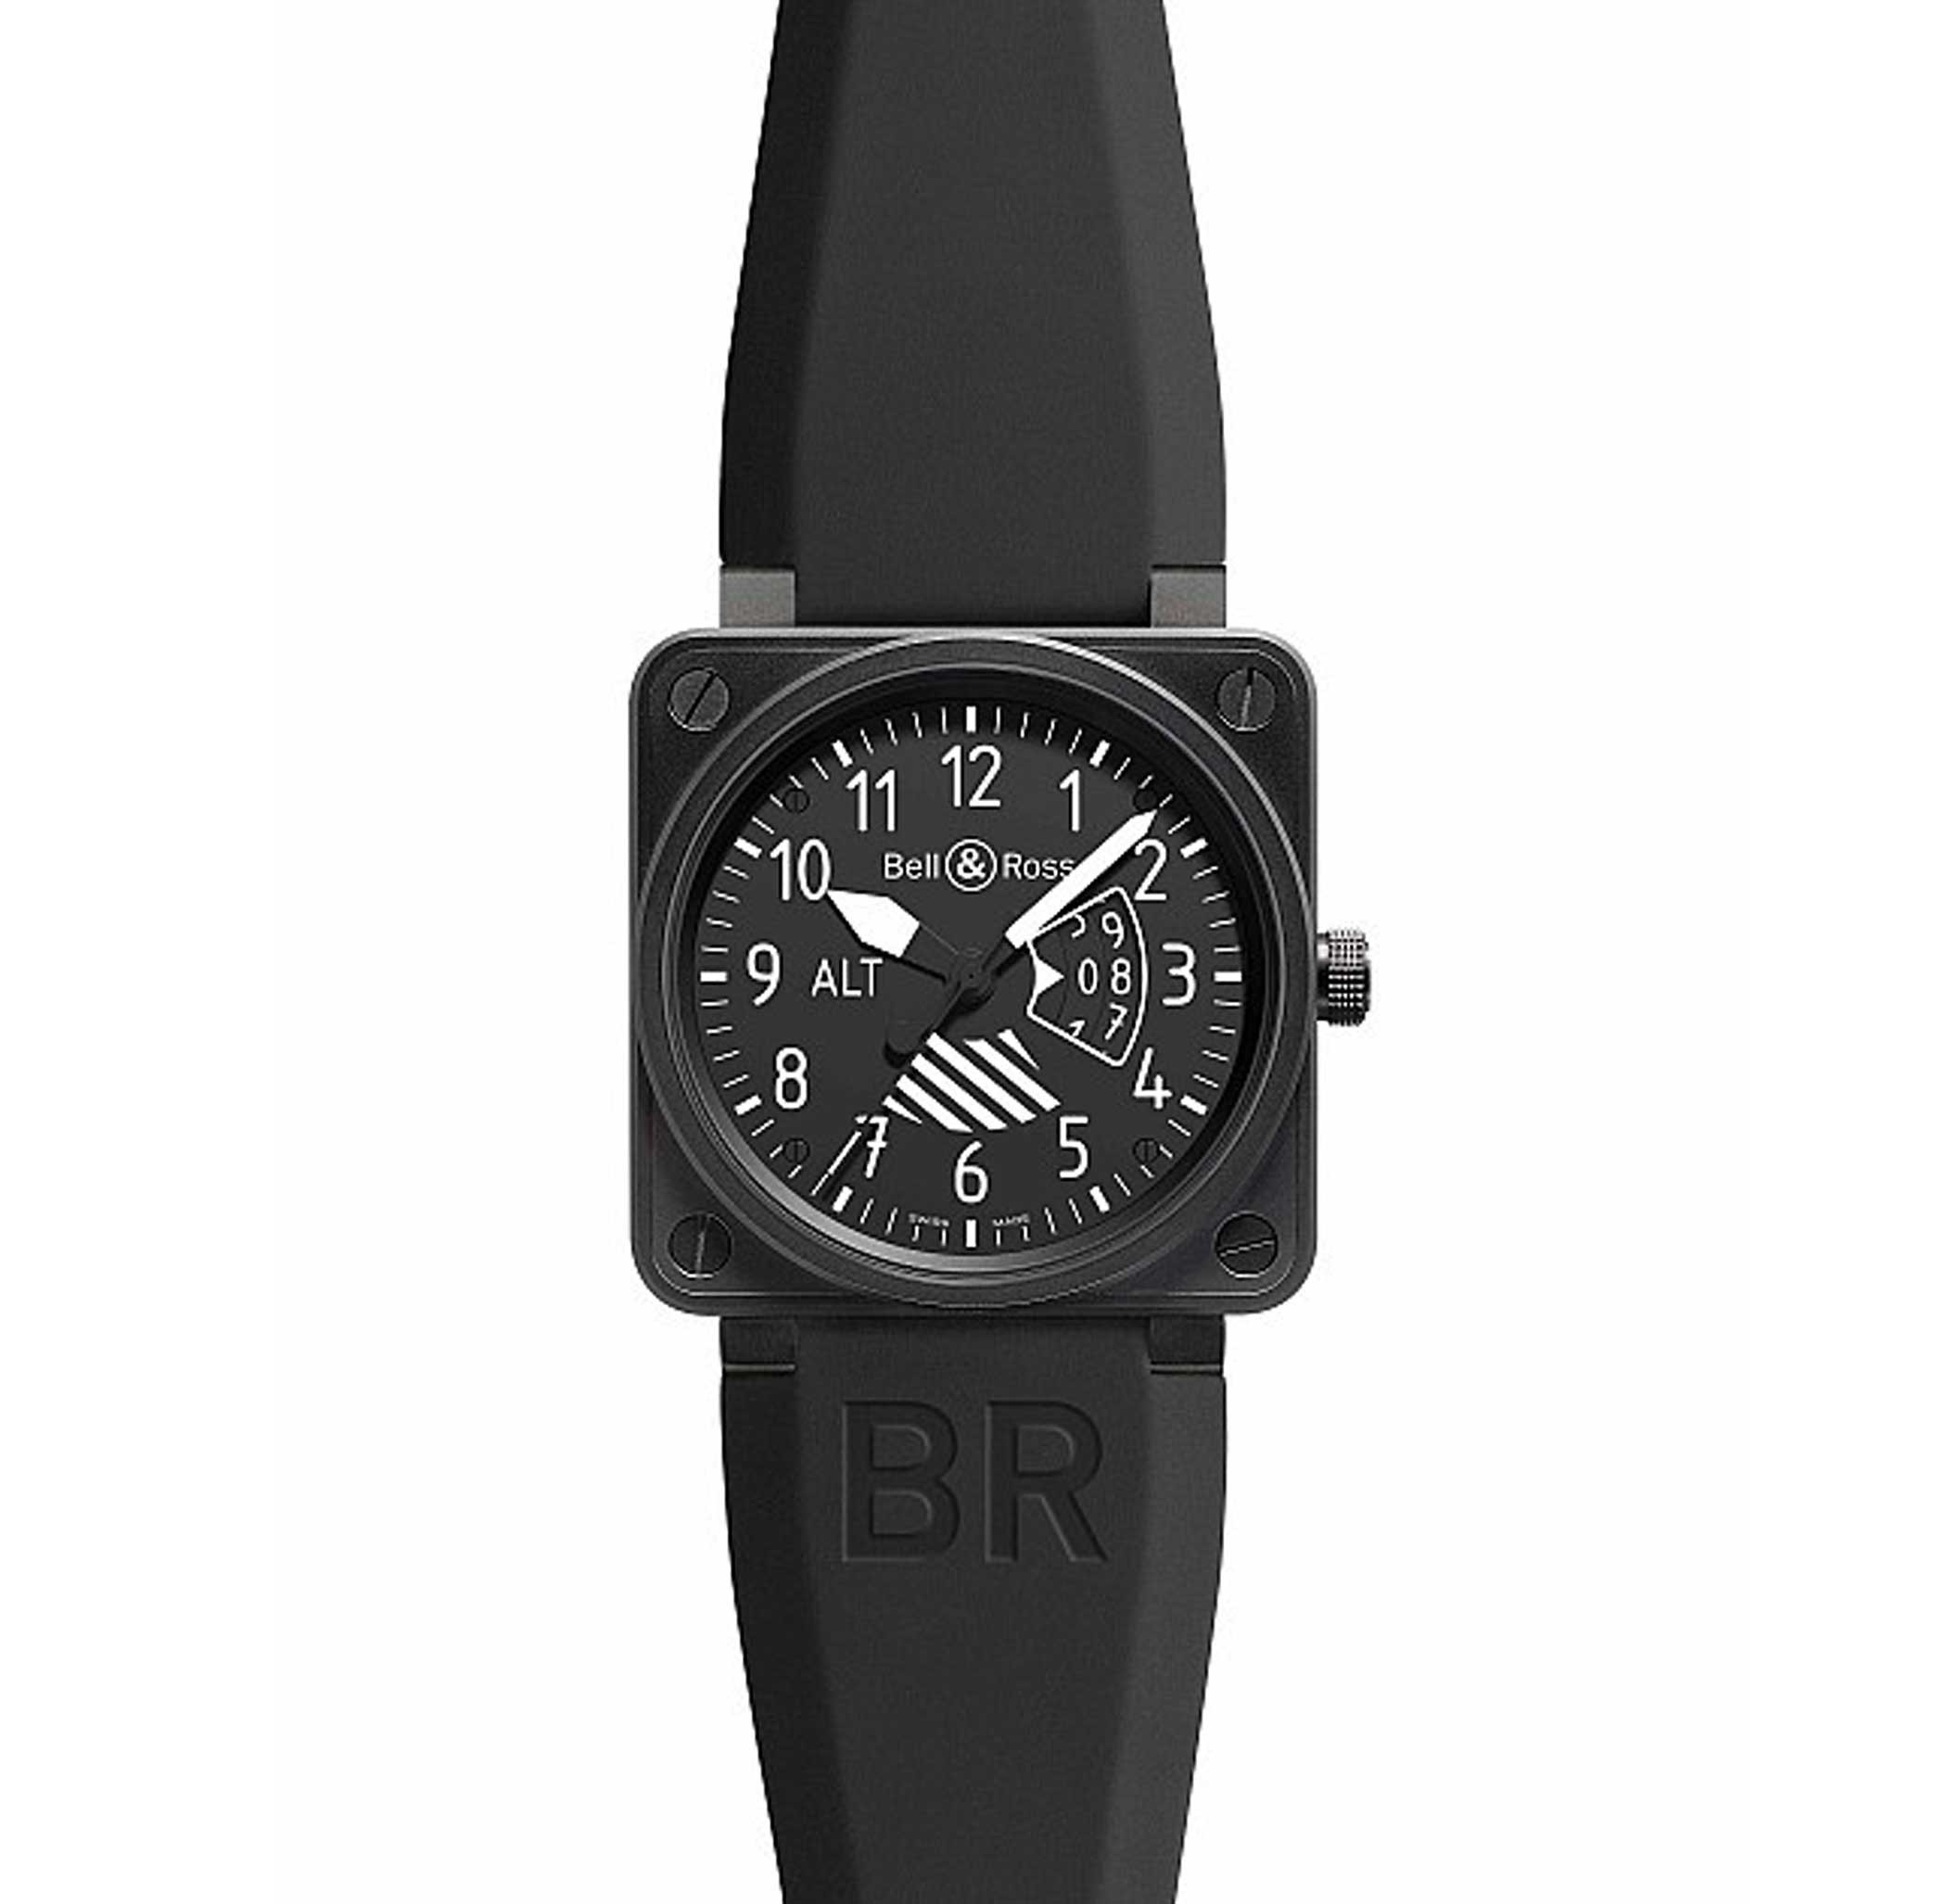 Bell & Ross BR 01 Instrument 46mm [ba9c]